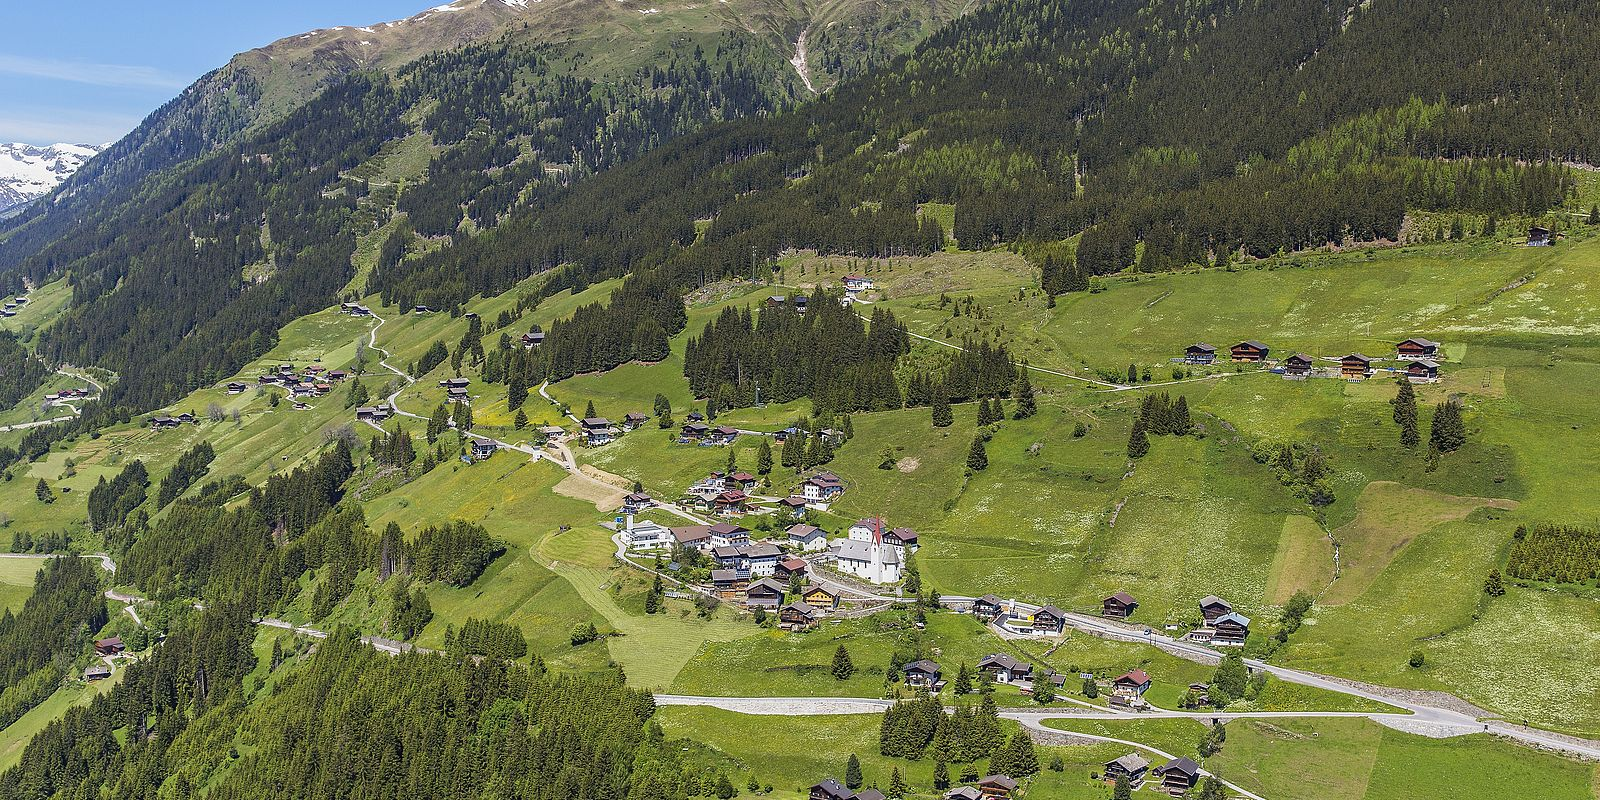 St. Veit from above